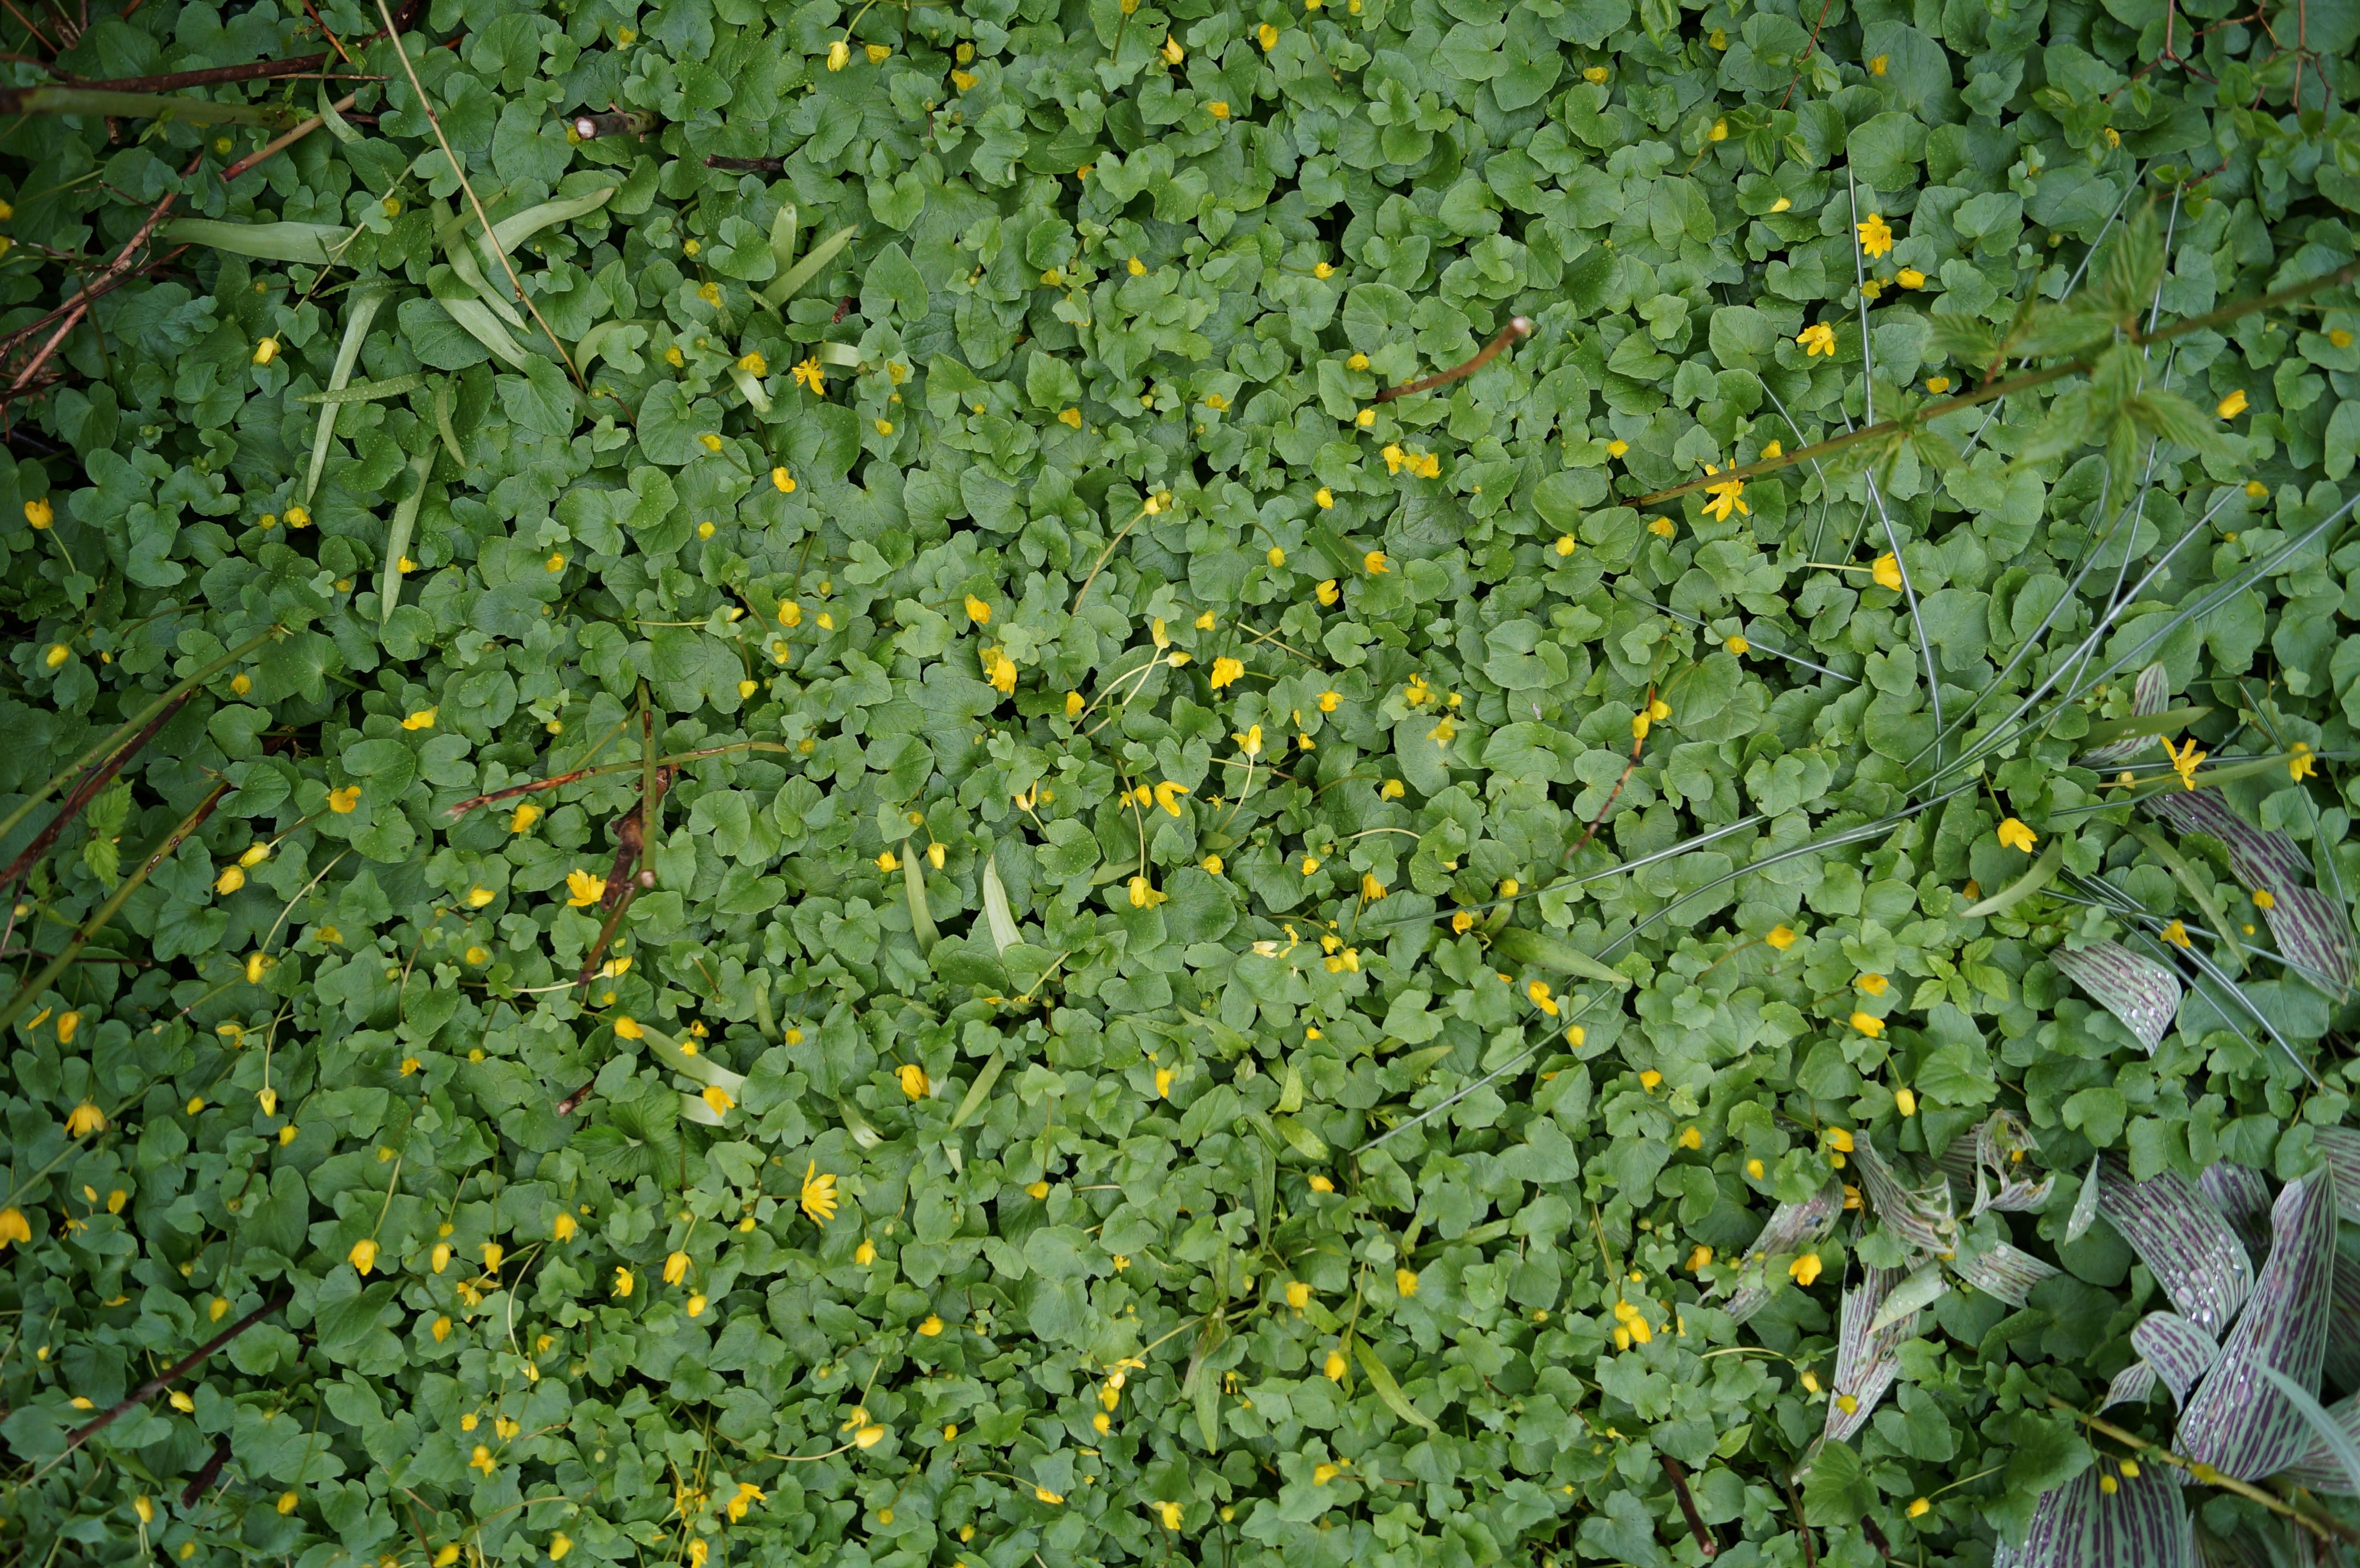 A top view of a patch of buttercup flowers